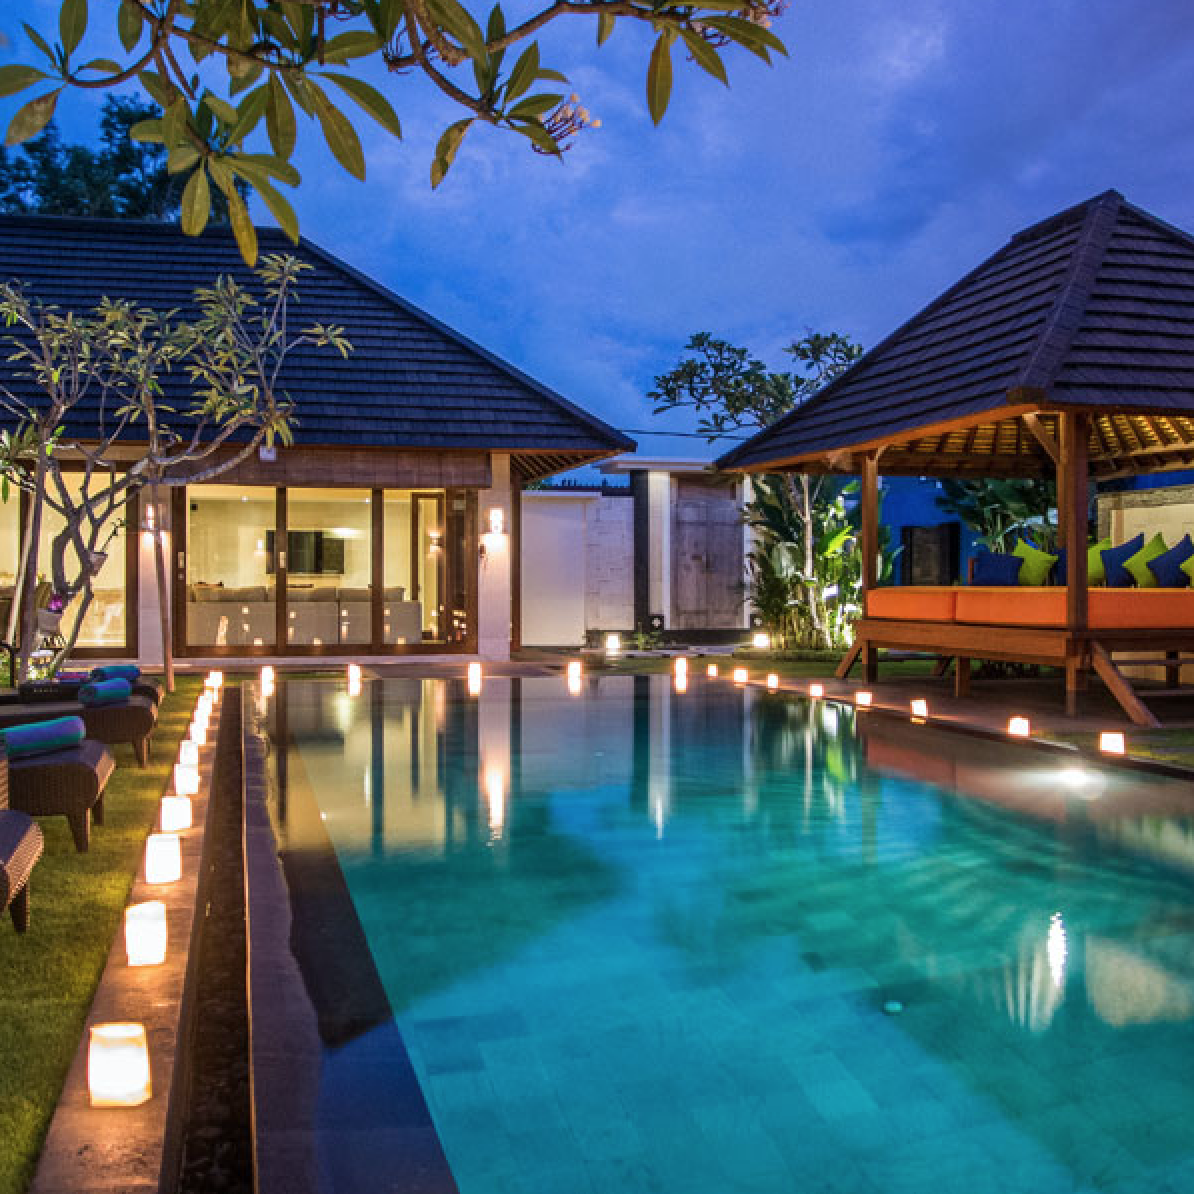 VILLA KIRGEO, CANGGU, 3,4 bedrooms, $275 – $465 per night